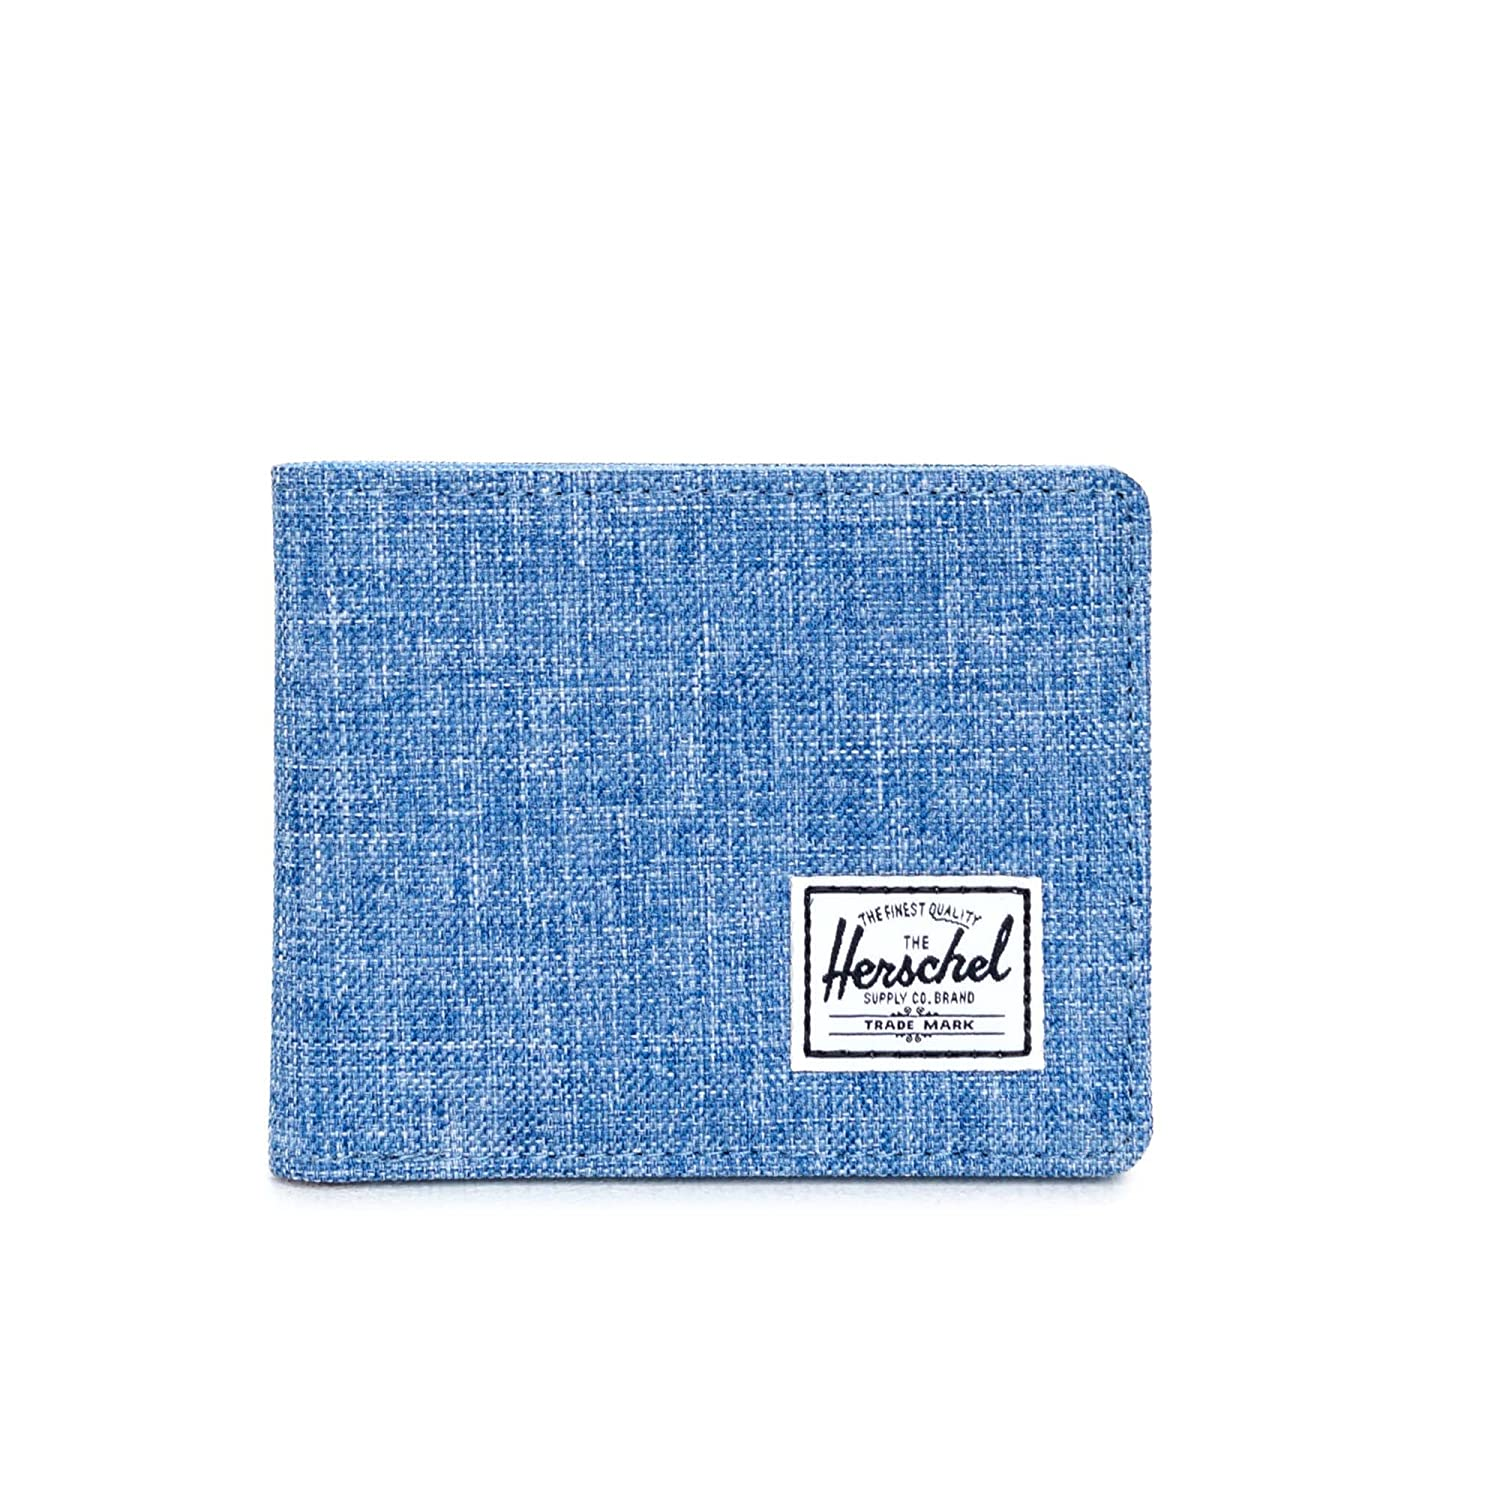 Herschel Supply Company Monedero 10069-00927-OS, Varios ...